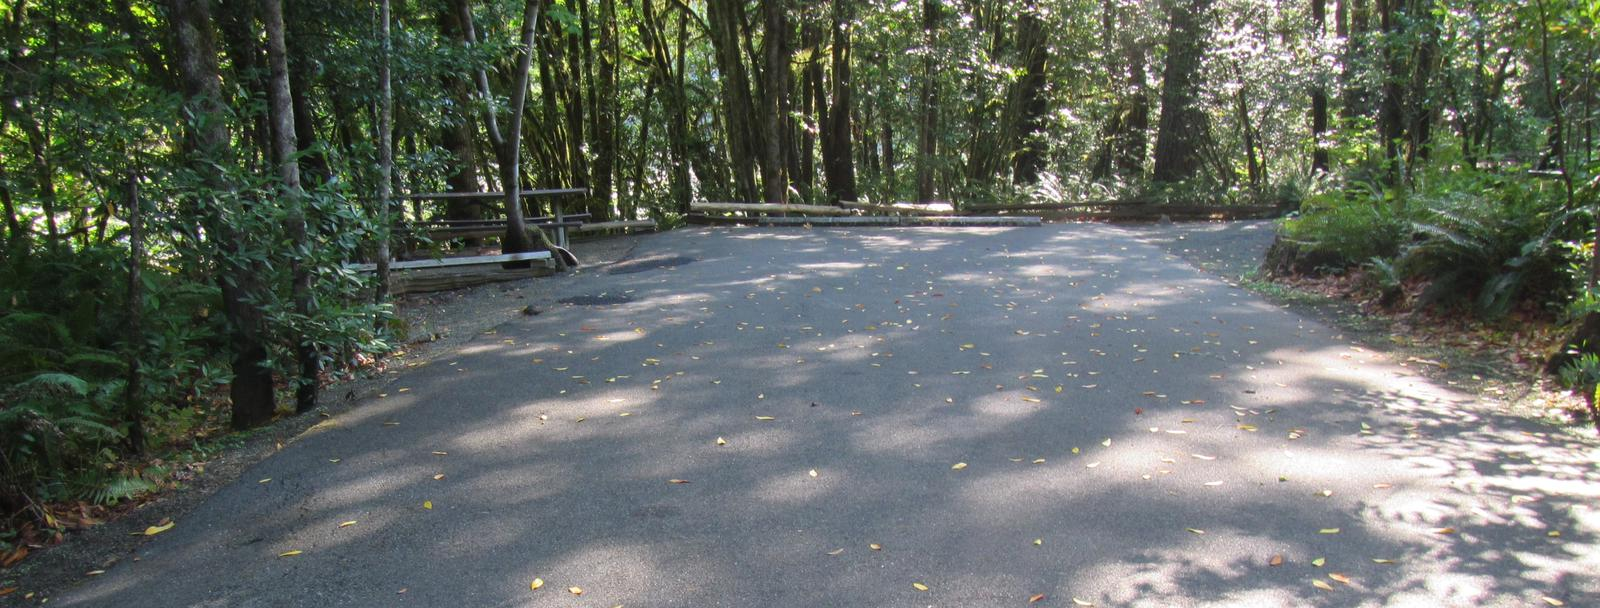 Site includes a 57' parking spur, picnic table and fire ring